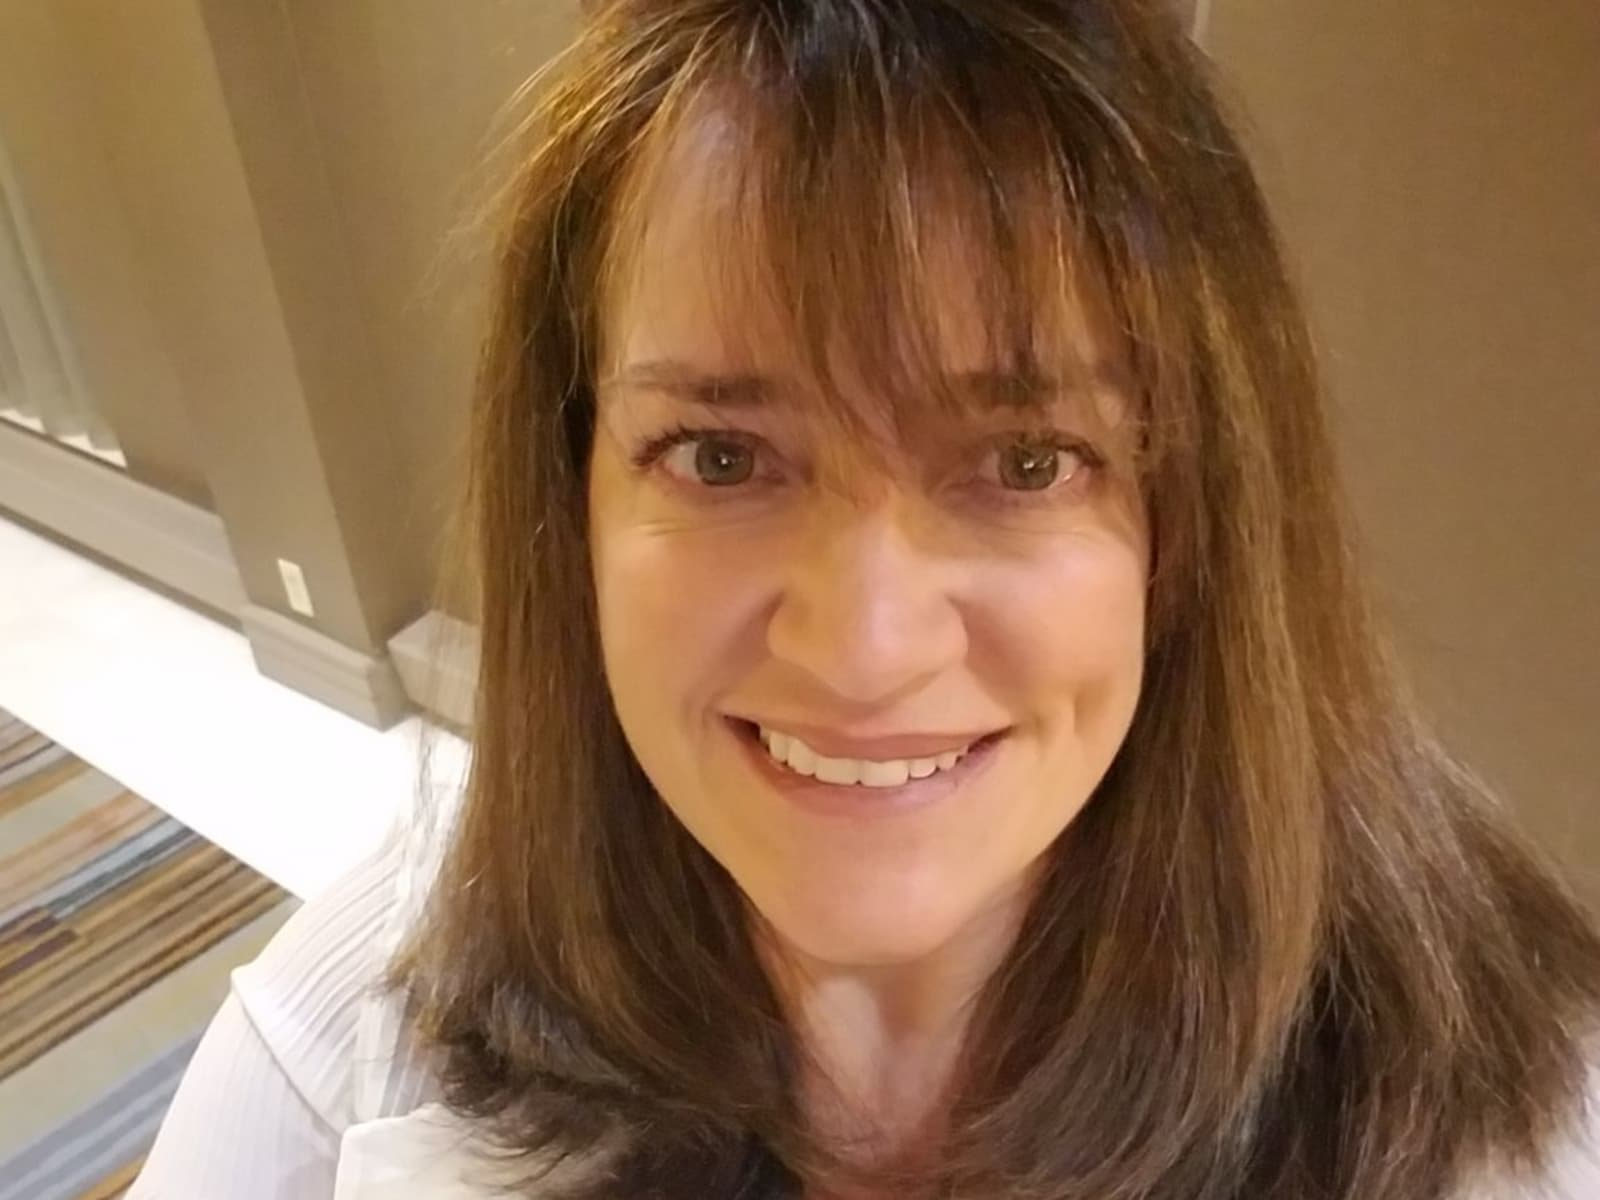 Susan from Chicago Loop, Illinois, United States